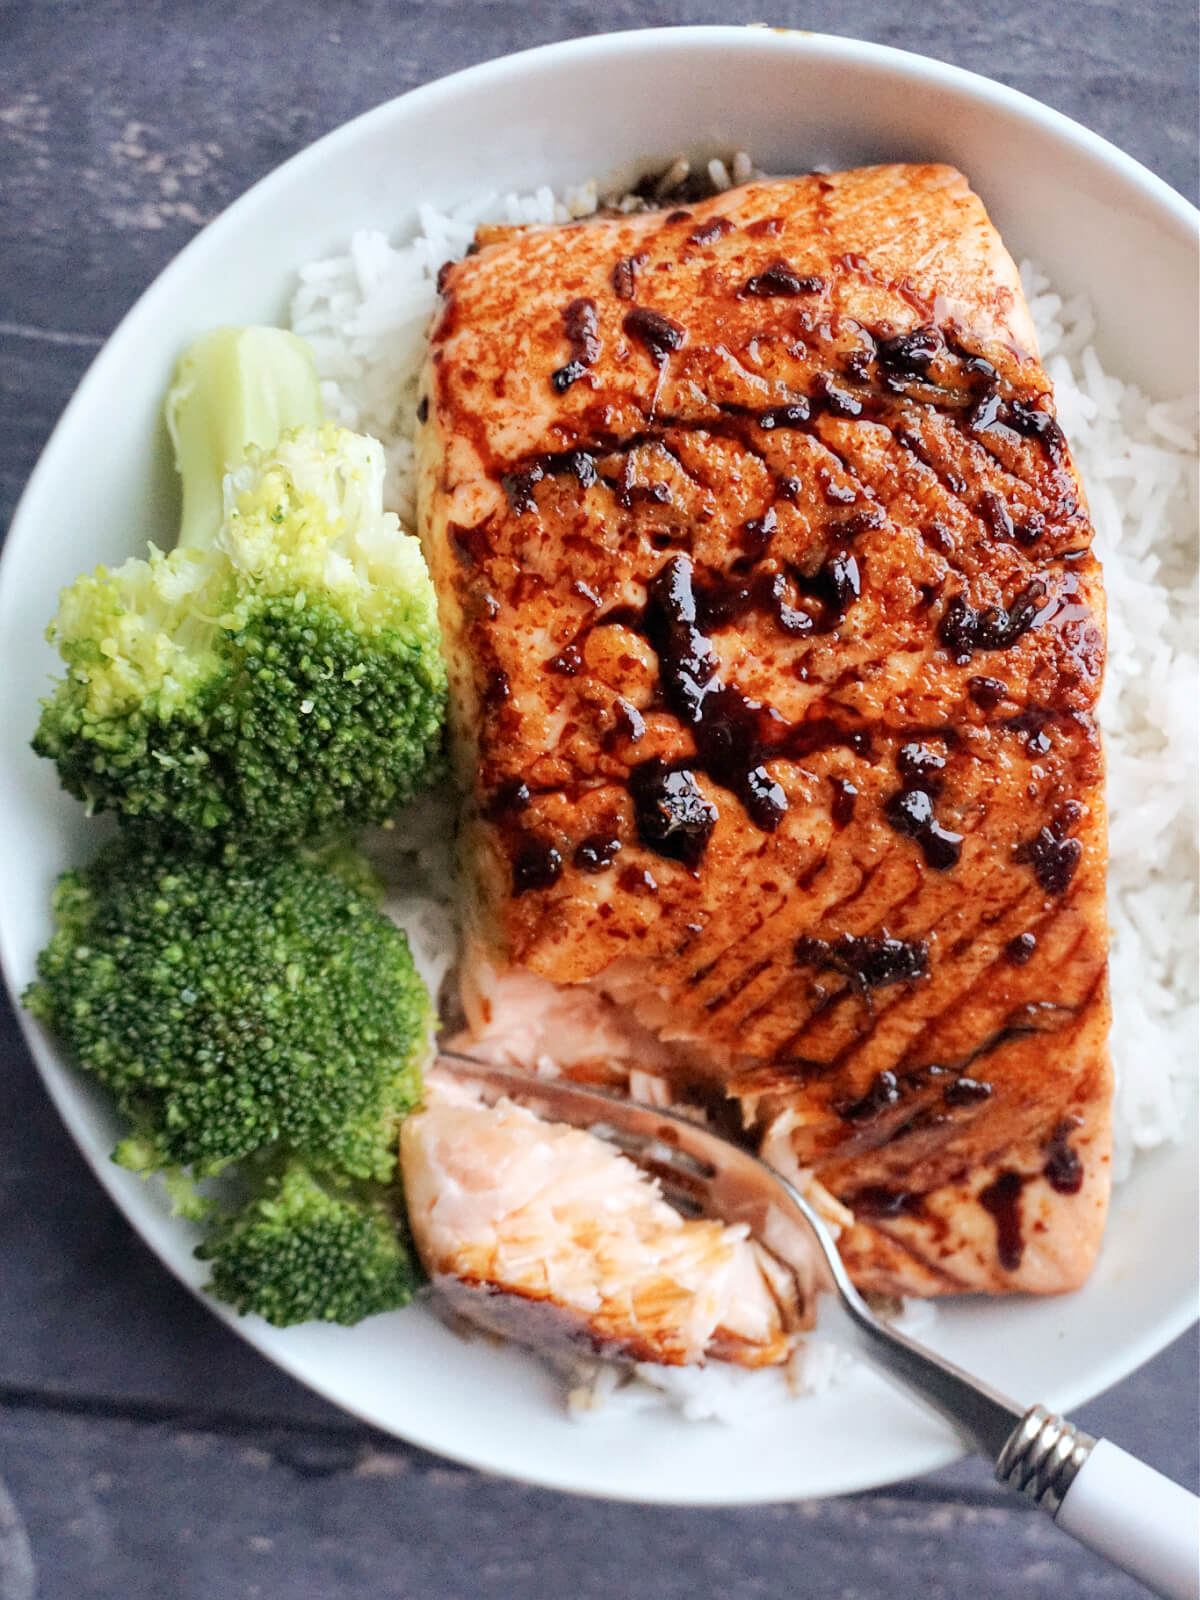 A fillet of teriyaki salmon over a bed of rice and 2 broccoli florets